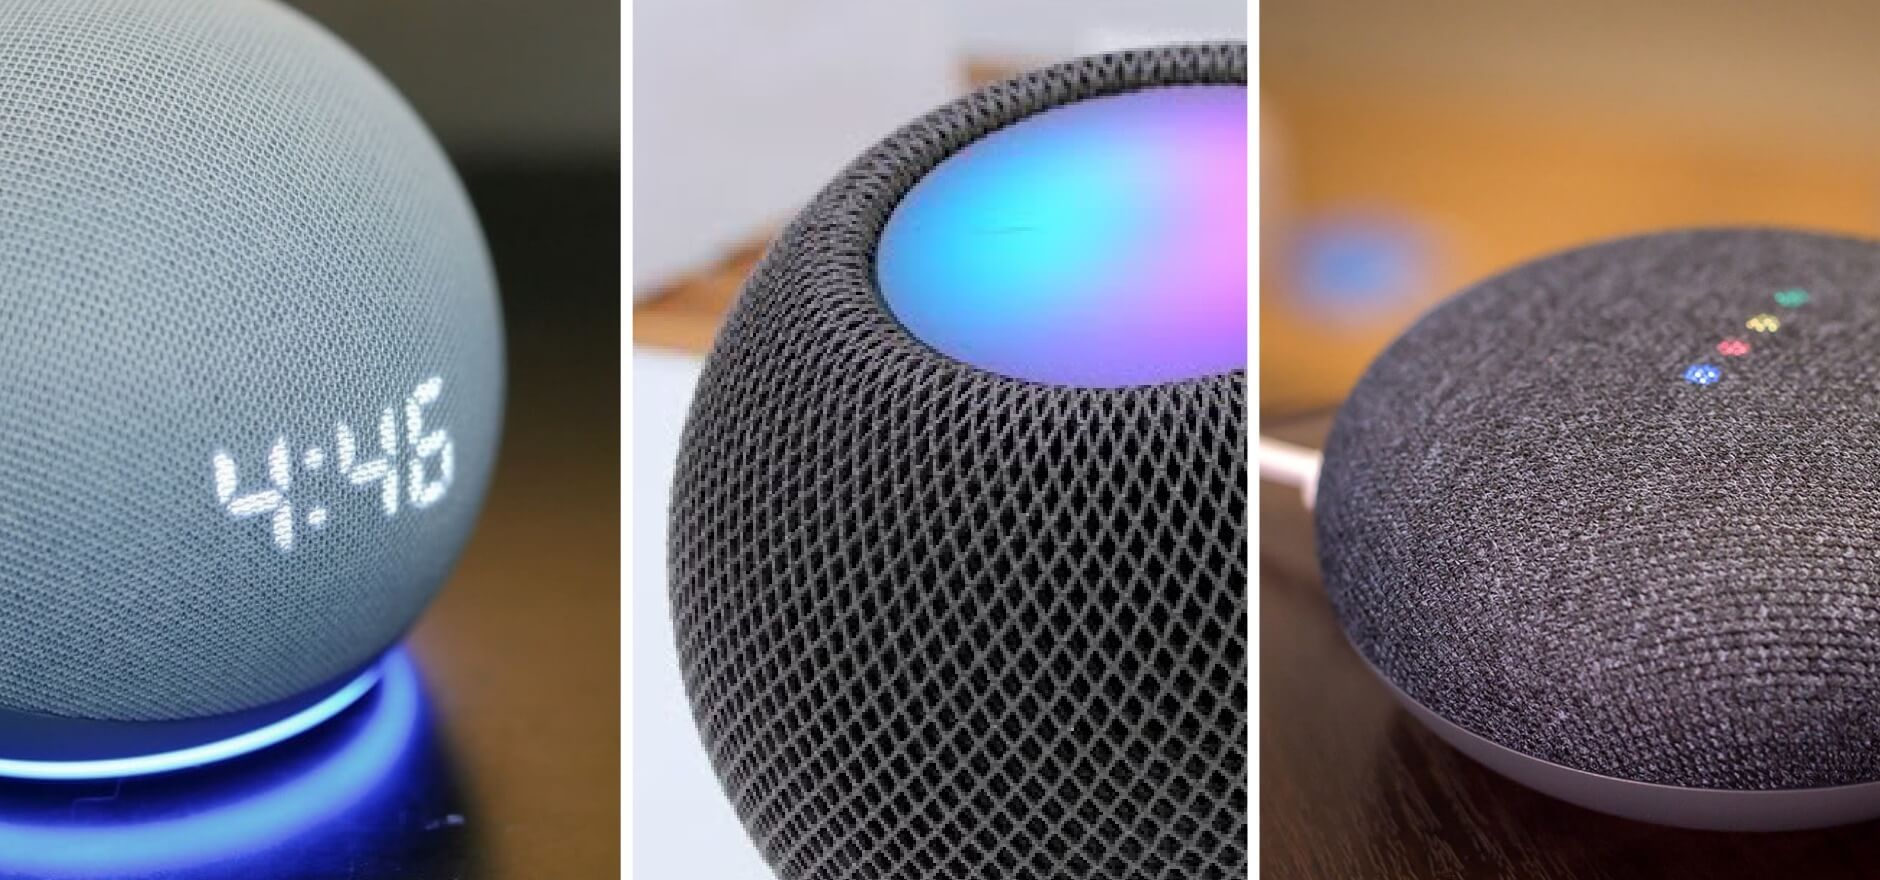 voiceassistants news image